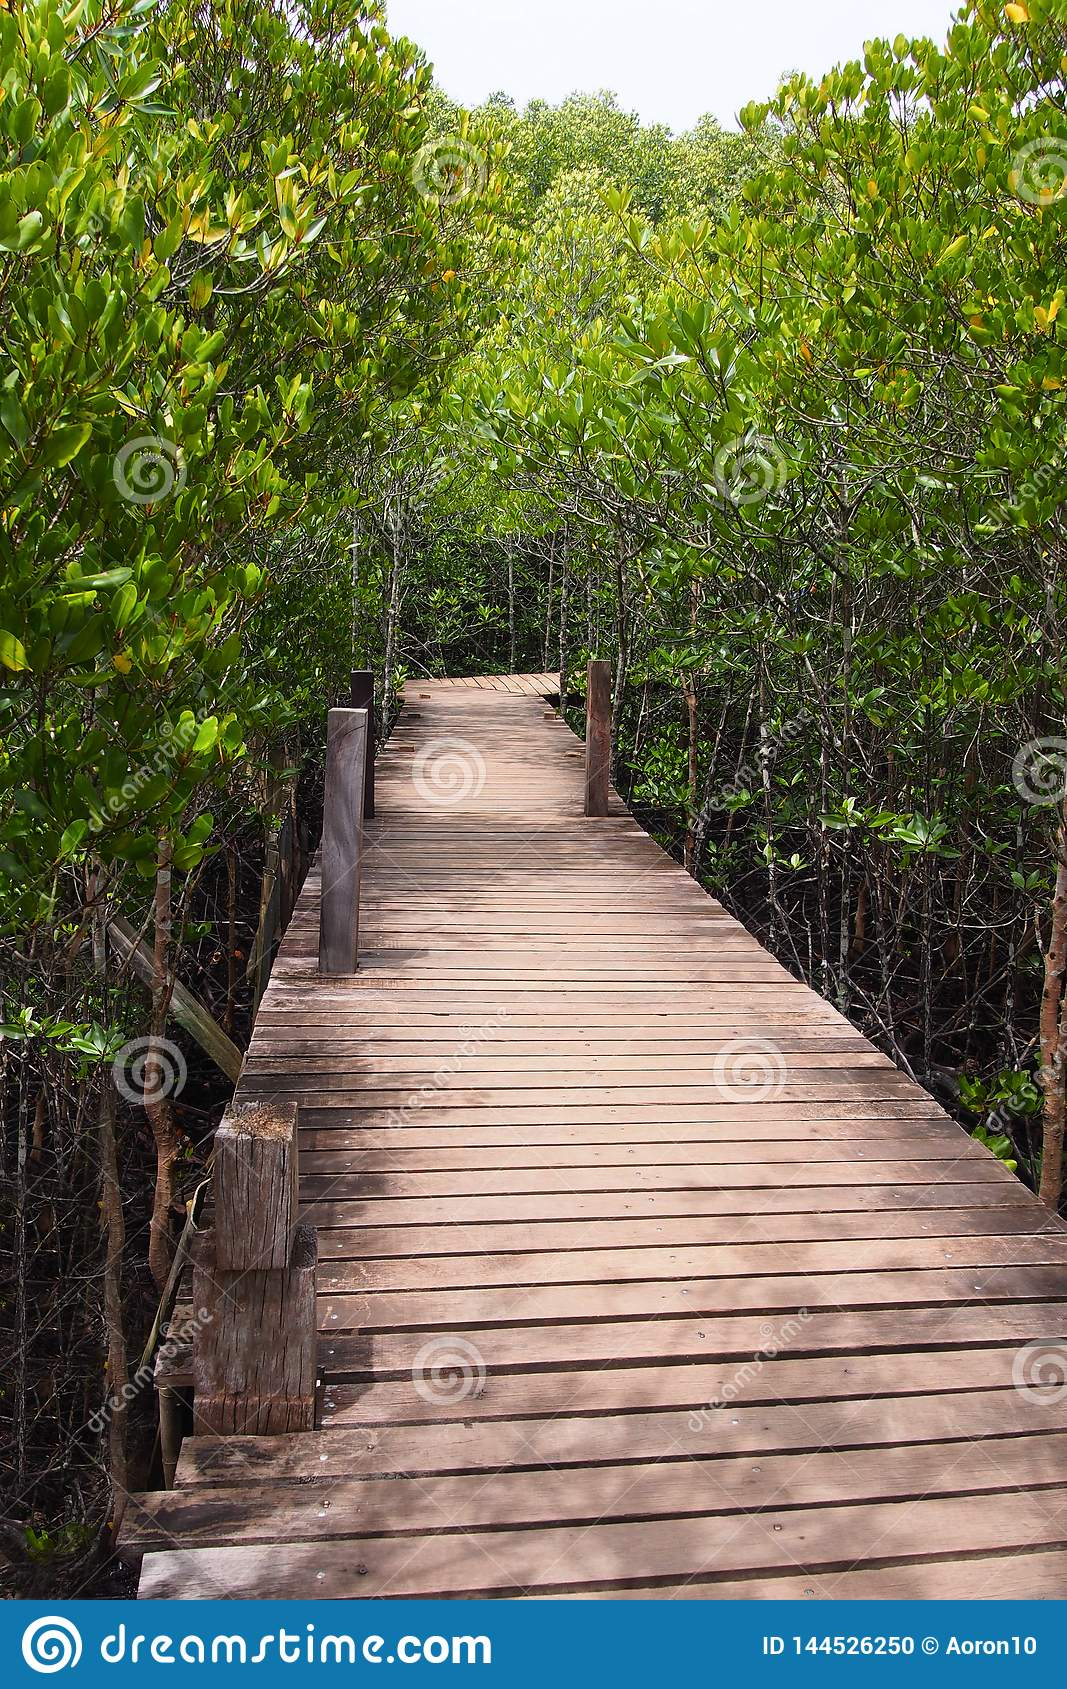 Wooden bridge for a path through the natural mangrove forest, for the natural background